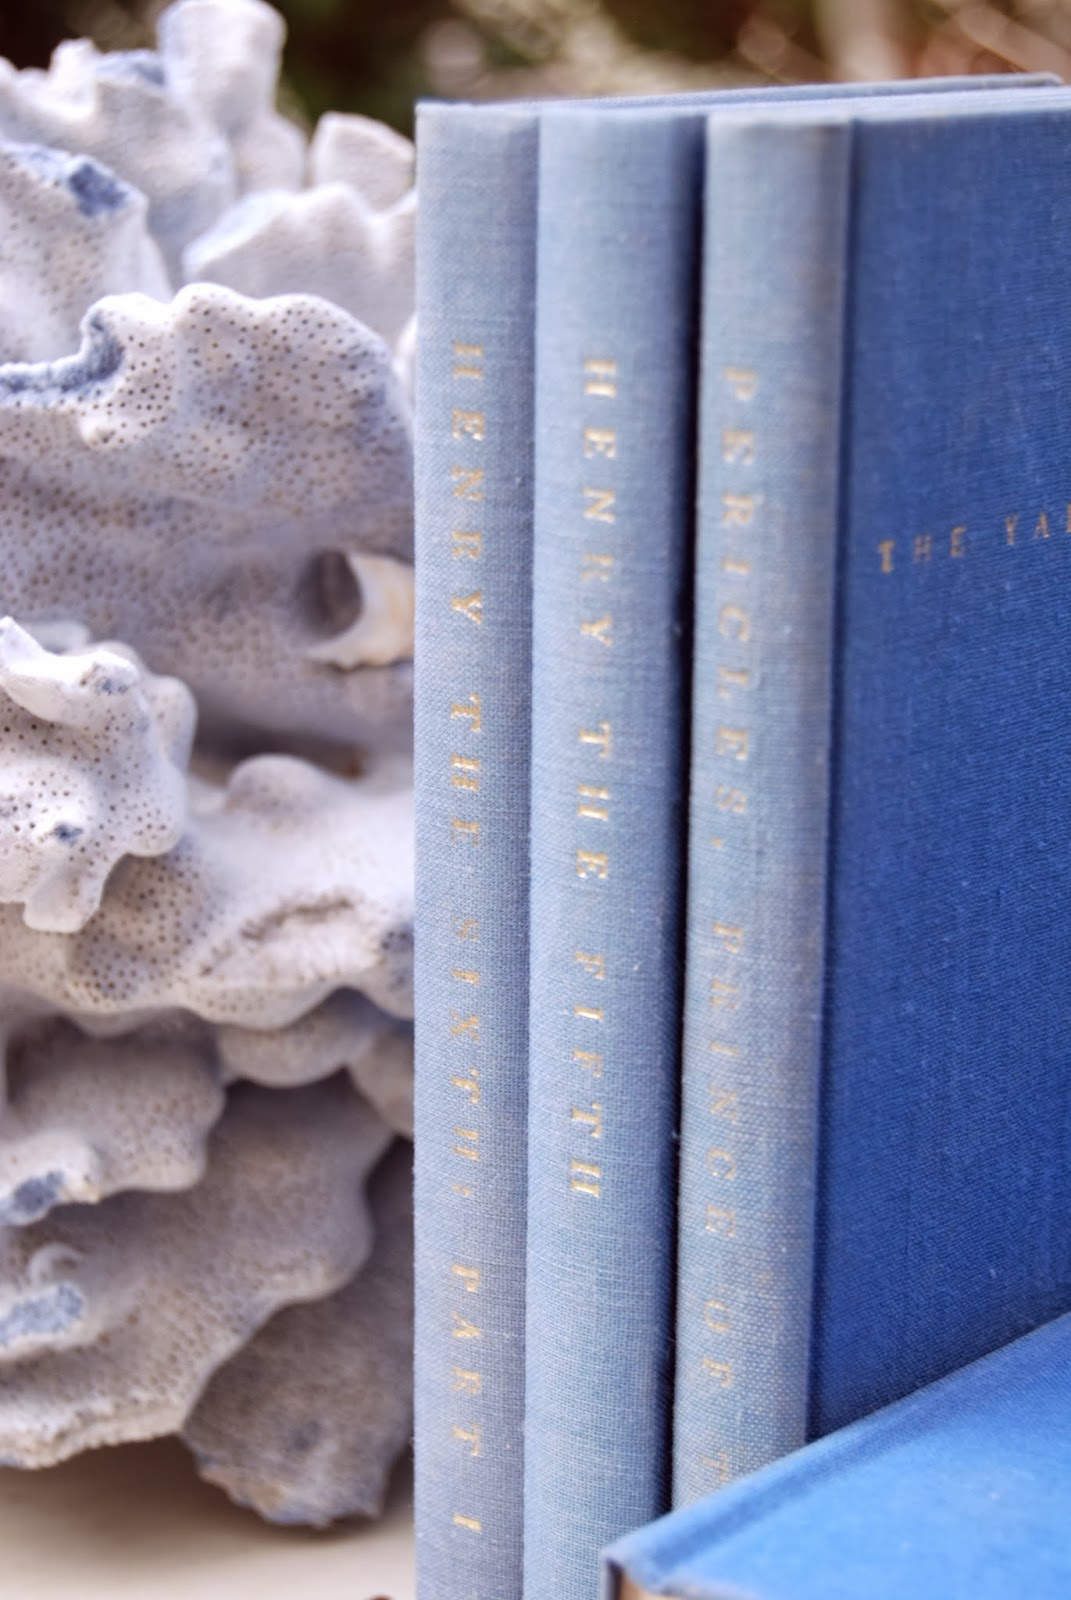 Blue Coral with blue books: Nature's Sculptures